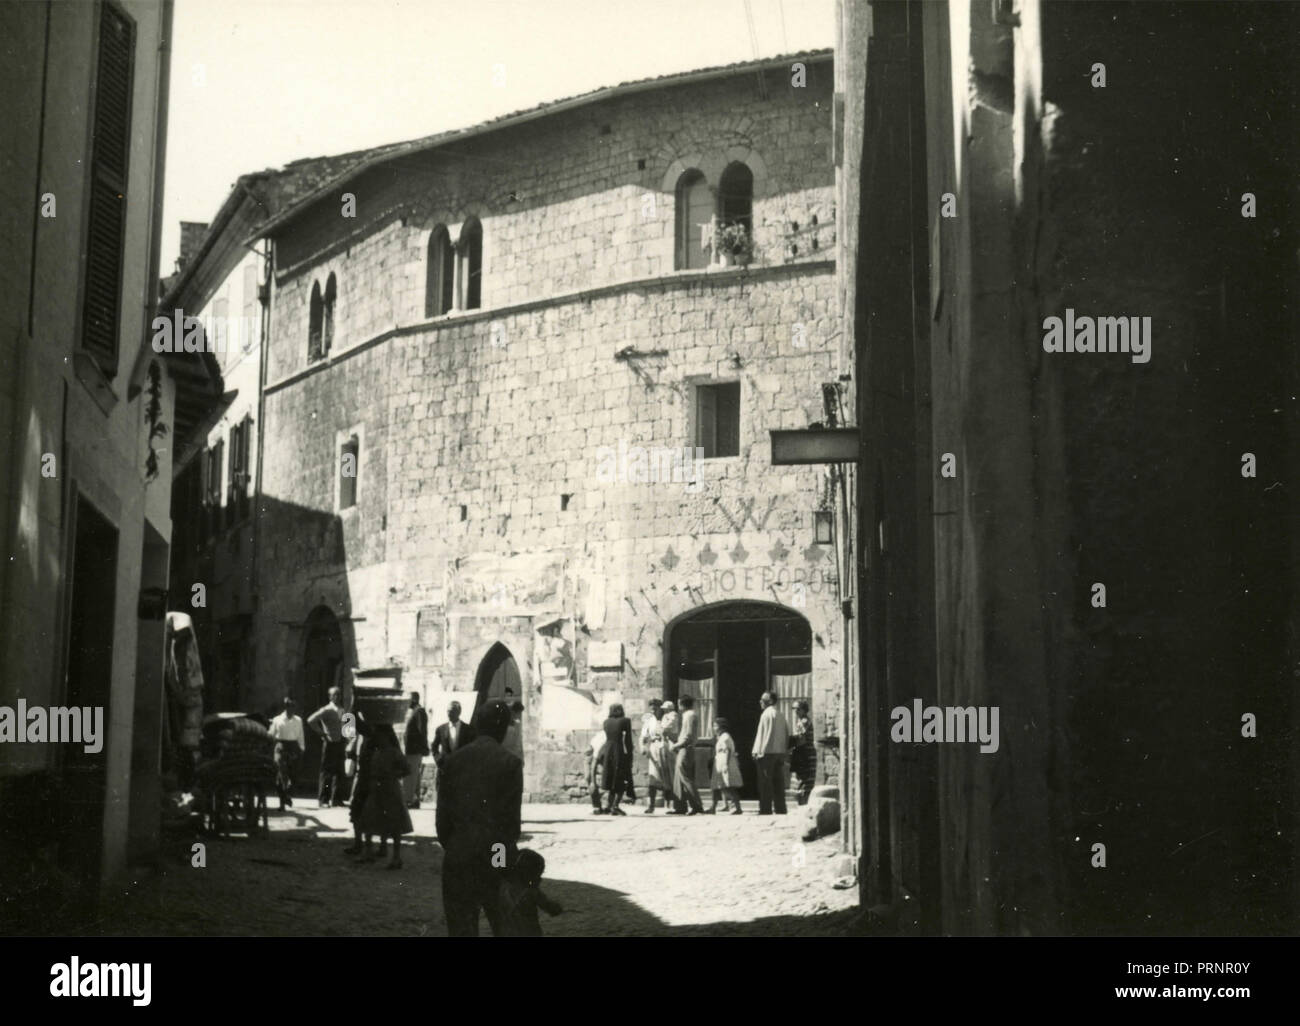 Small town life, Italy 1930s - Stock Image